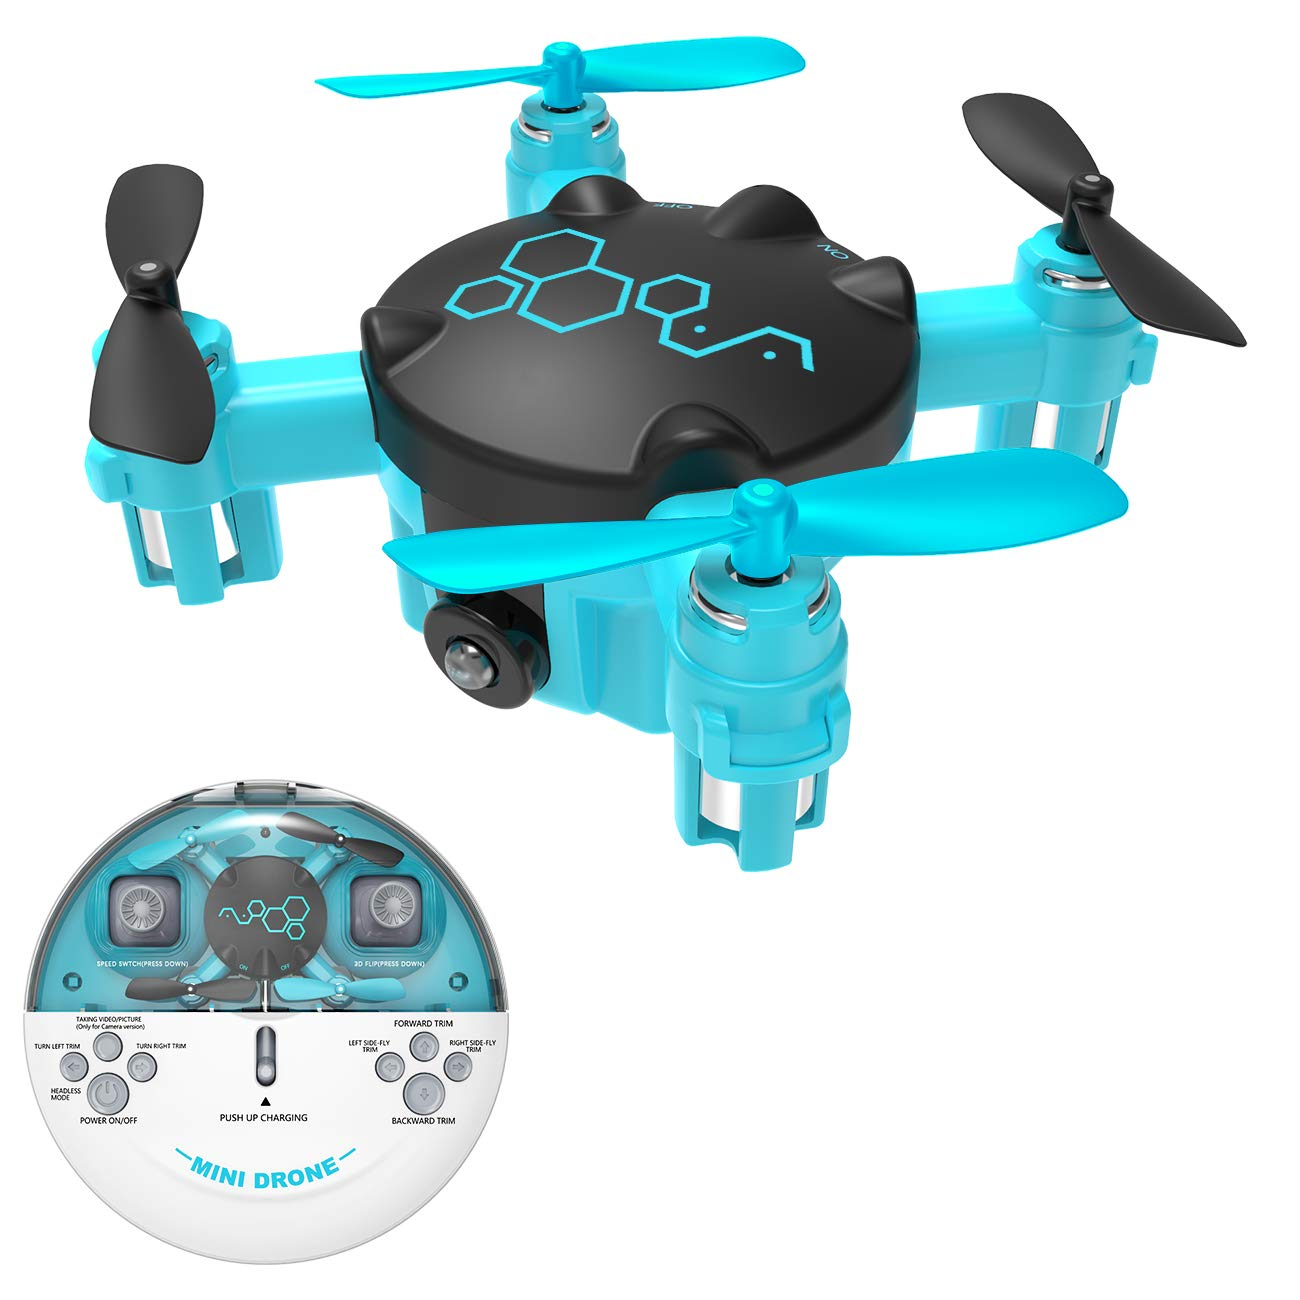 Mini Drone for Kids or Adults, RC Nano Quadcopter with Altitude Hold, One Key Return Home Function, Easy Flying Helicopter Toys for Boys or Girls, Long Flight Time Drone by KOOME